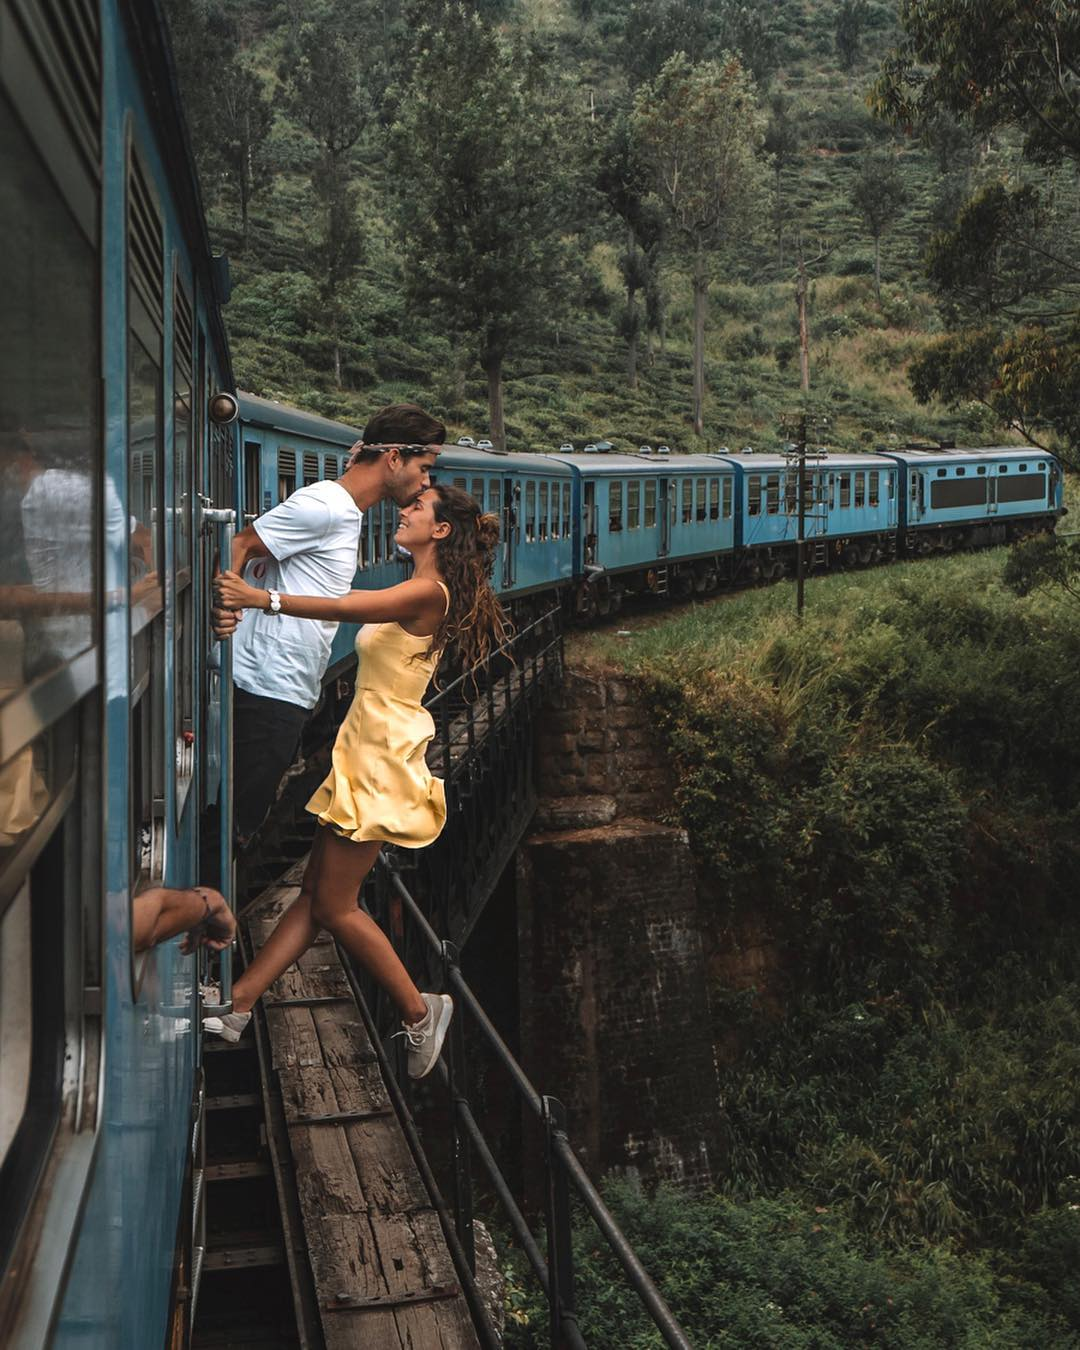 Girl and a boy kissing in train